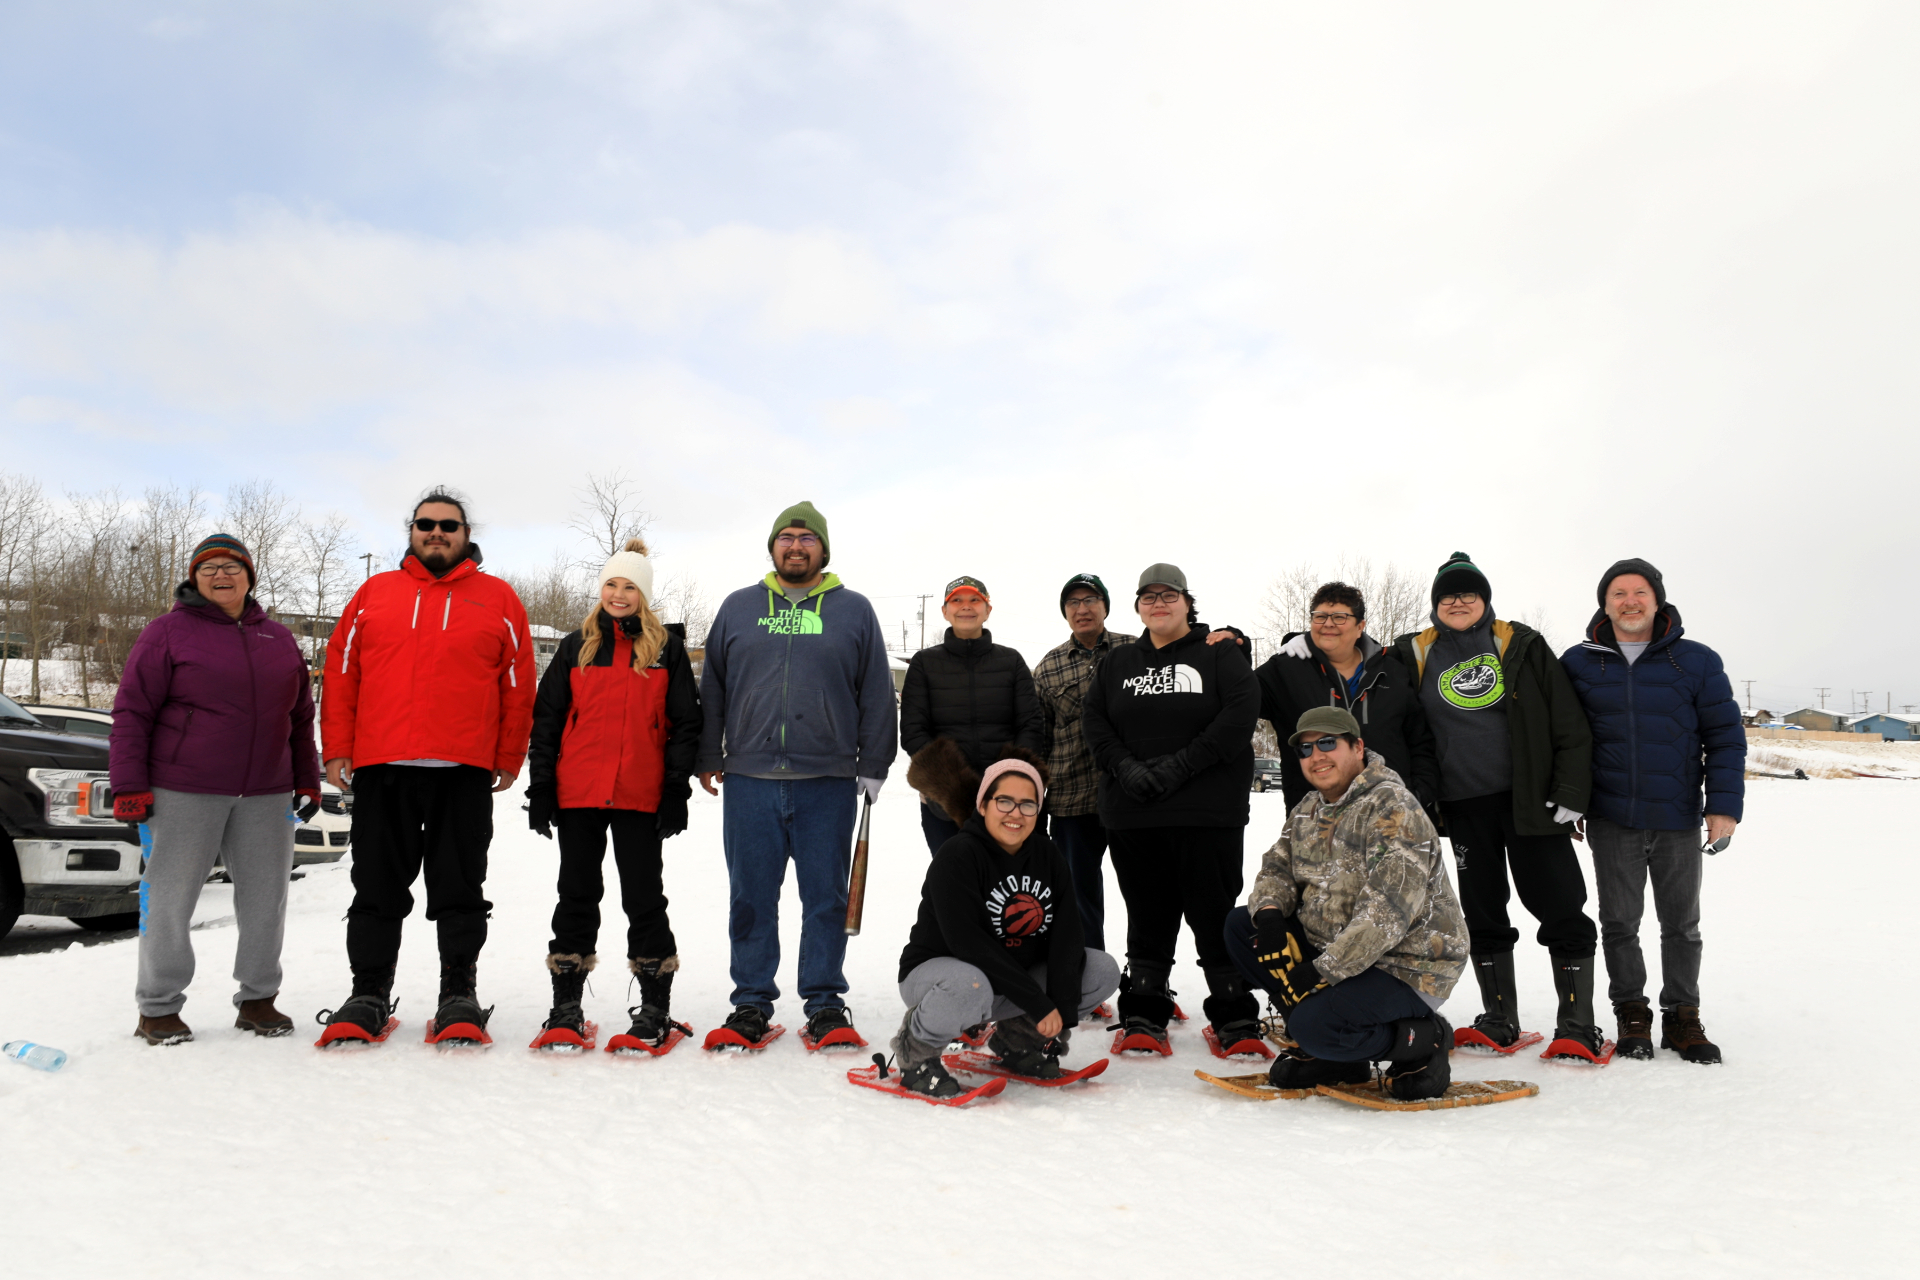 The Rhoda Hardlotte Memorial High School snowshoe baseball team poses for a picture on the frozen Churchhill River before stepping up to bat on February 28, 2020. (Heidi Atter/CBC)